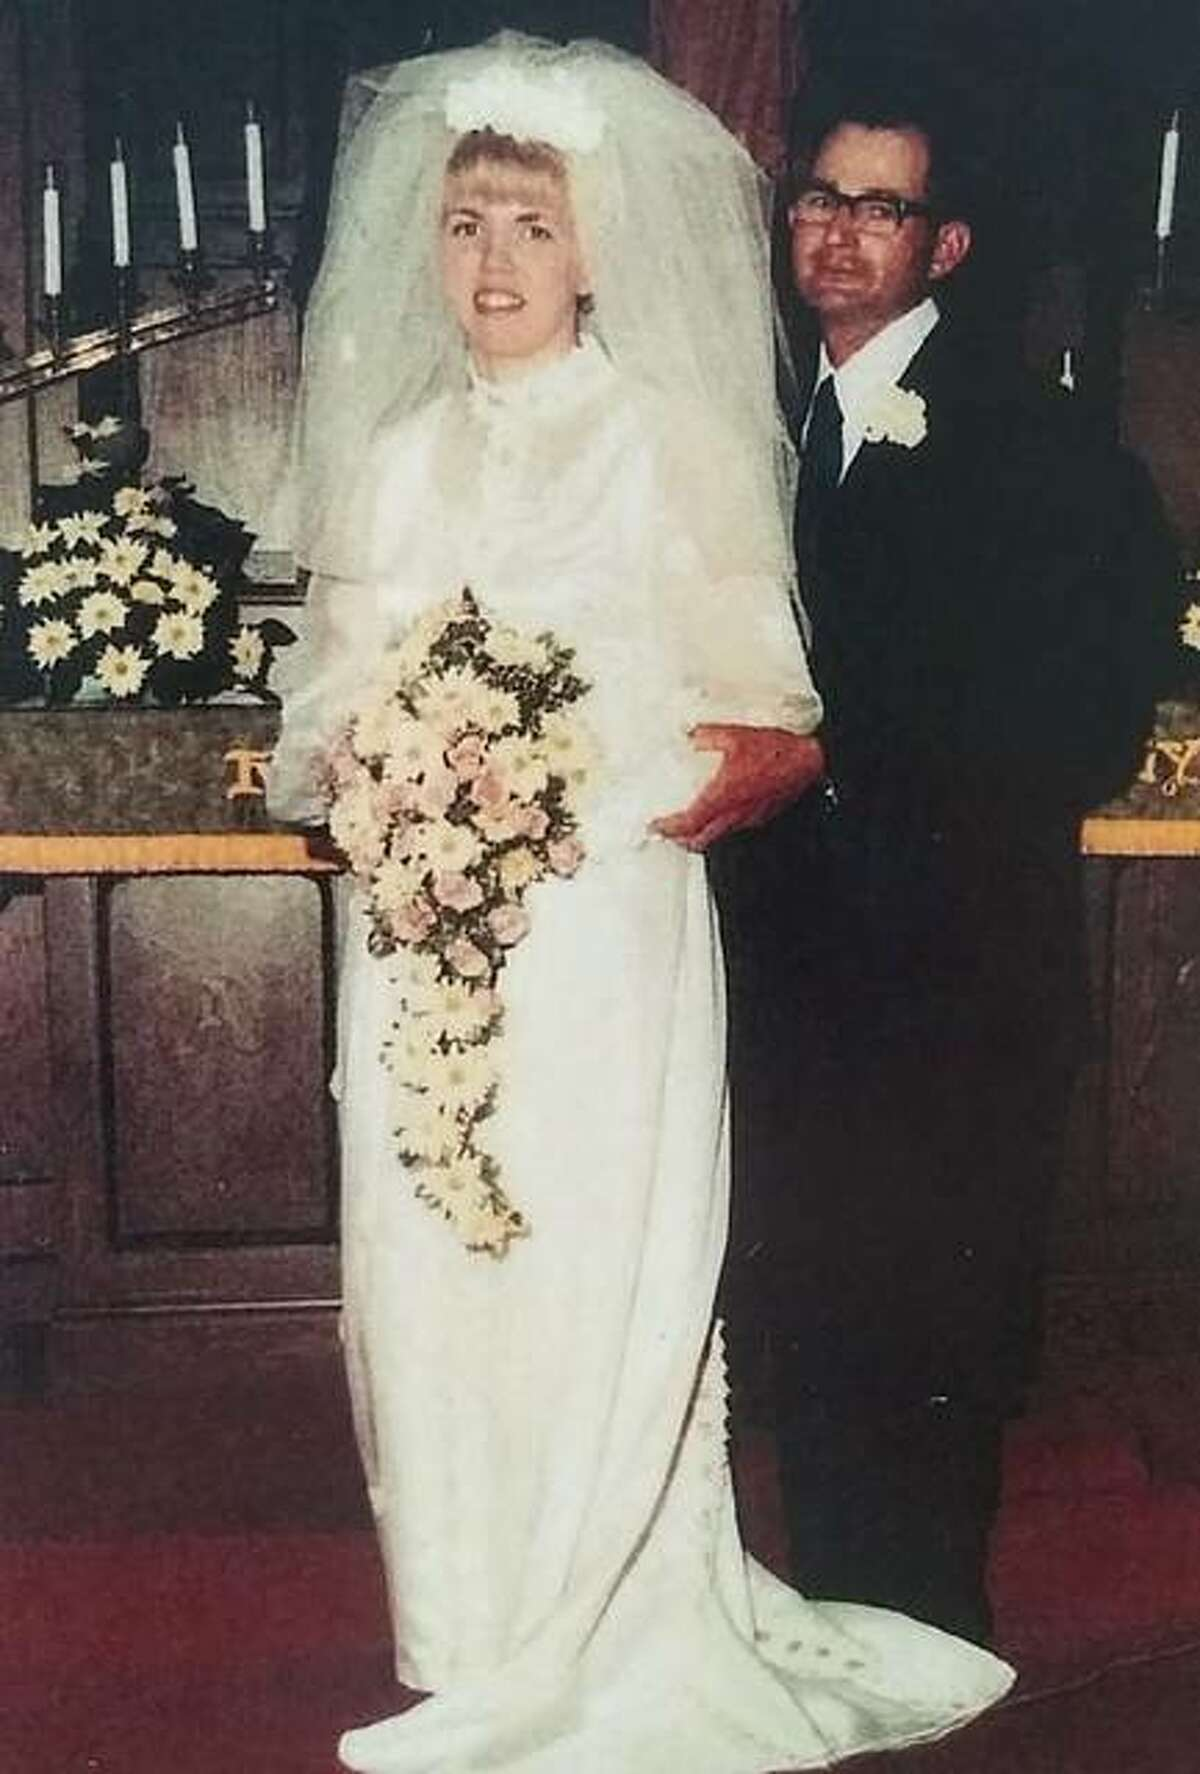 Harold and Carolyn Welling at their wedding